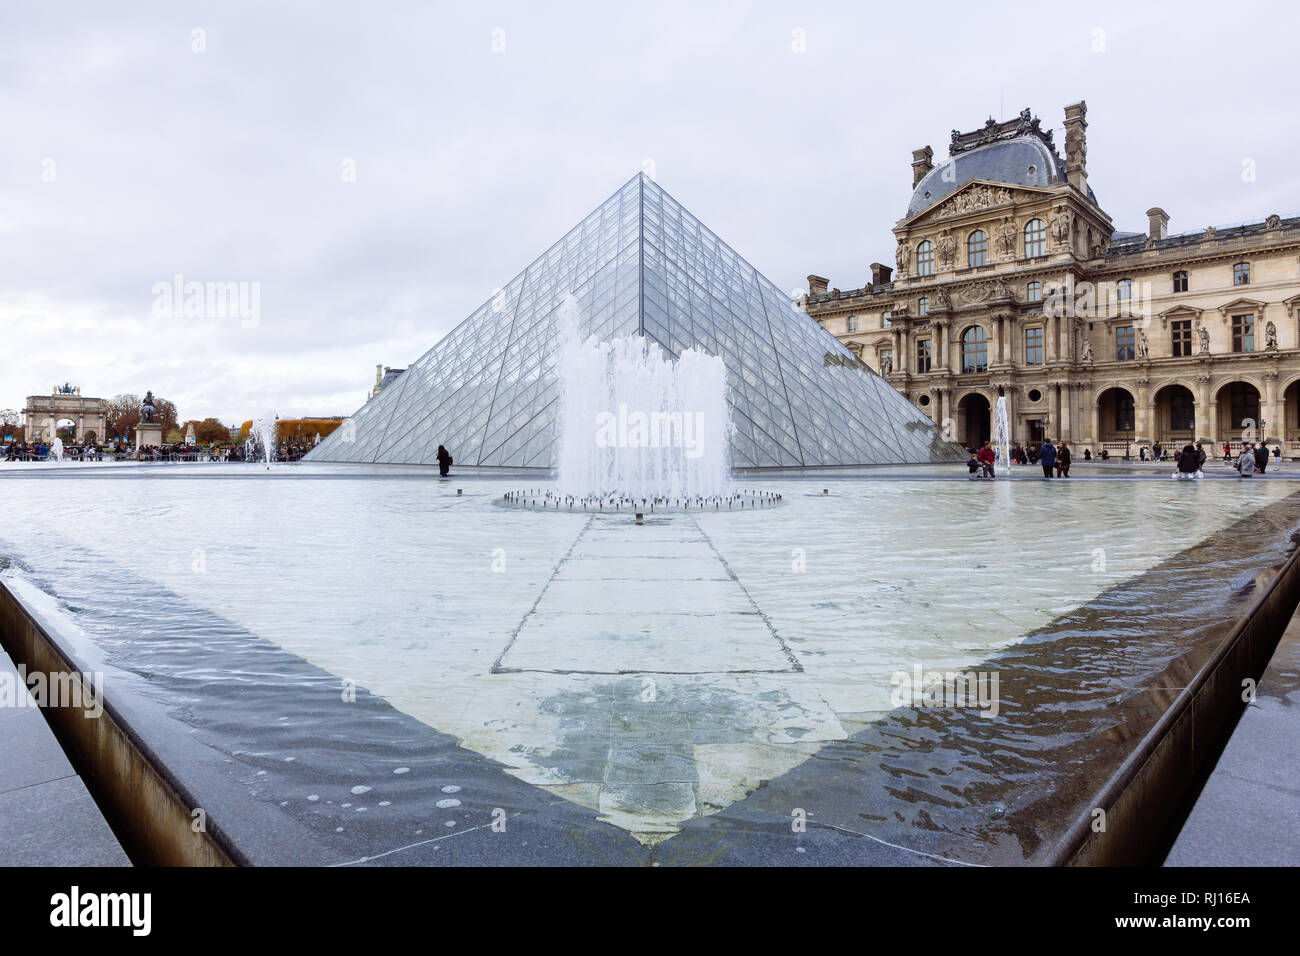 Paris (France) - View of famous Louvre Museum and Pyramid in a winter and rainy day Stock Photo